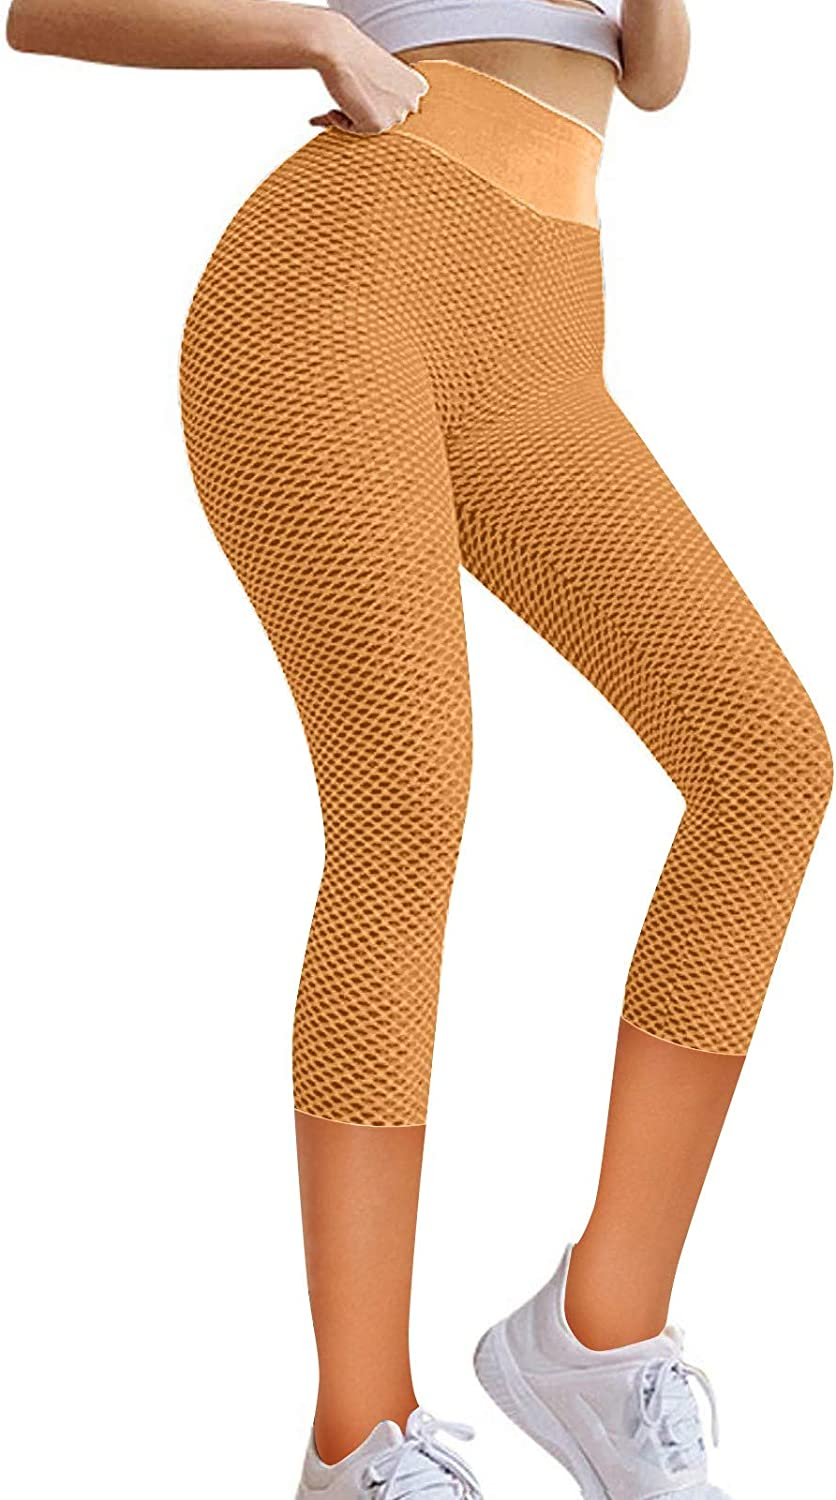 Wocachi Women's Yoga Pants 3/4 Capri Compression Running Tights Workout Stretch Athletic Leggings for Women